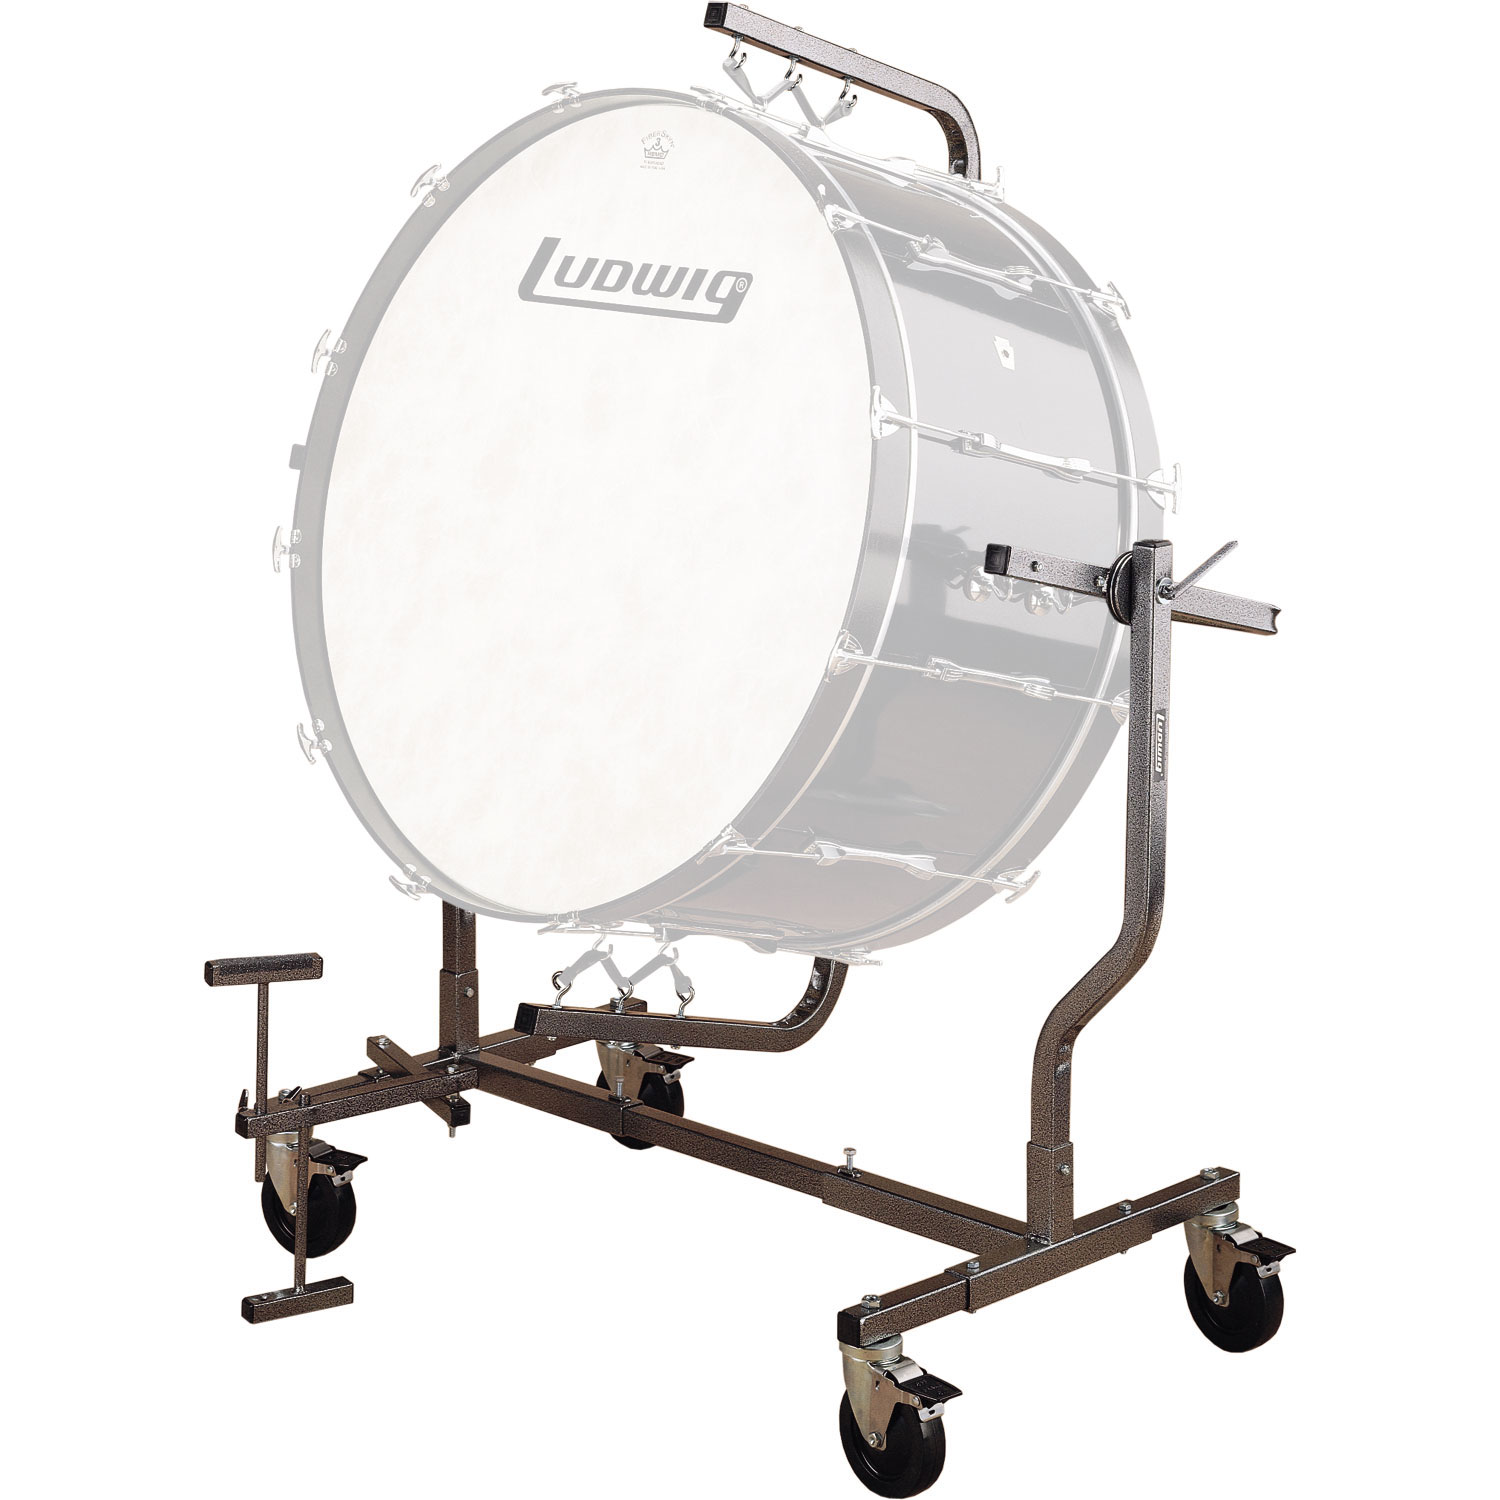 Alternate Image For Ludwig All Terrain Suspended Concert Bass Drum Stand